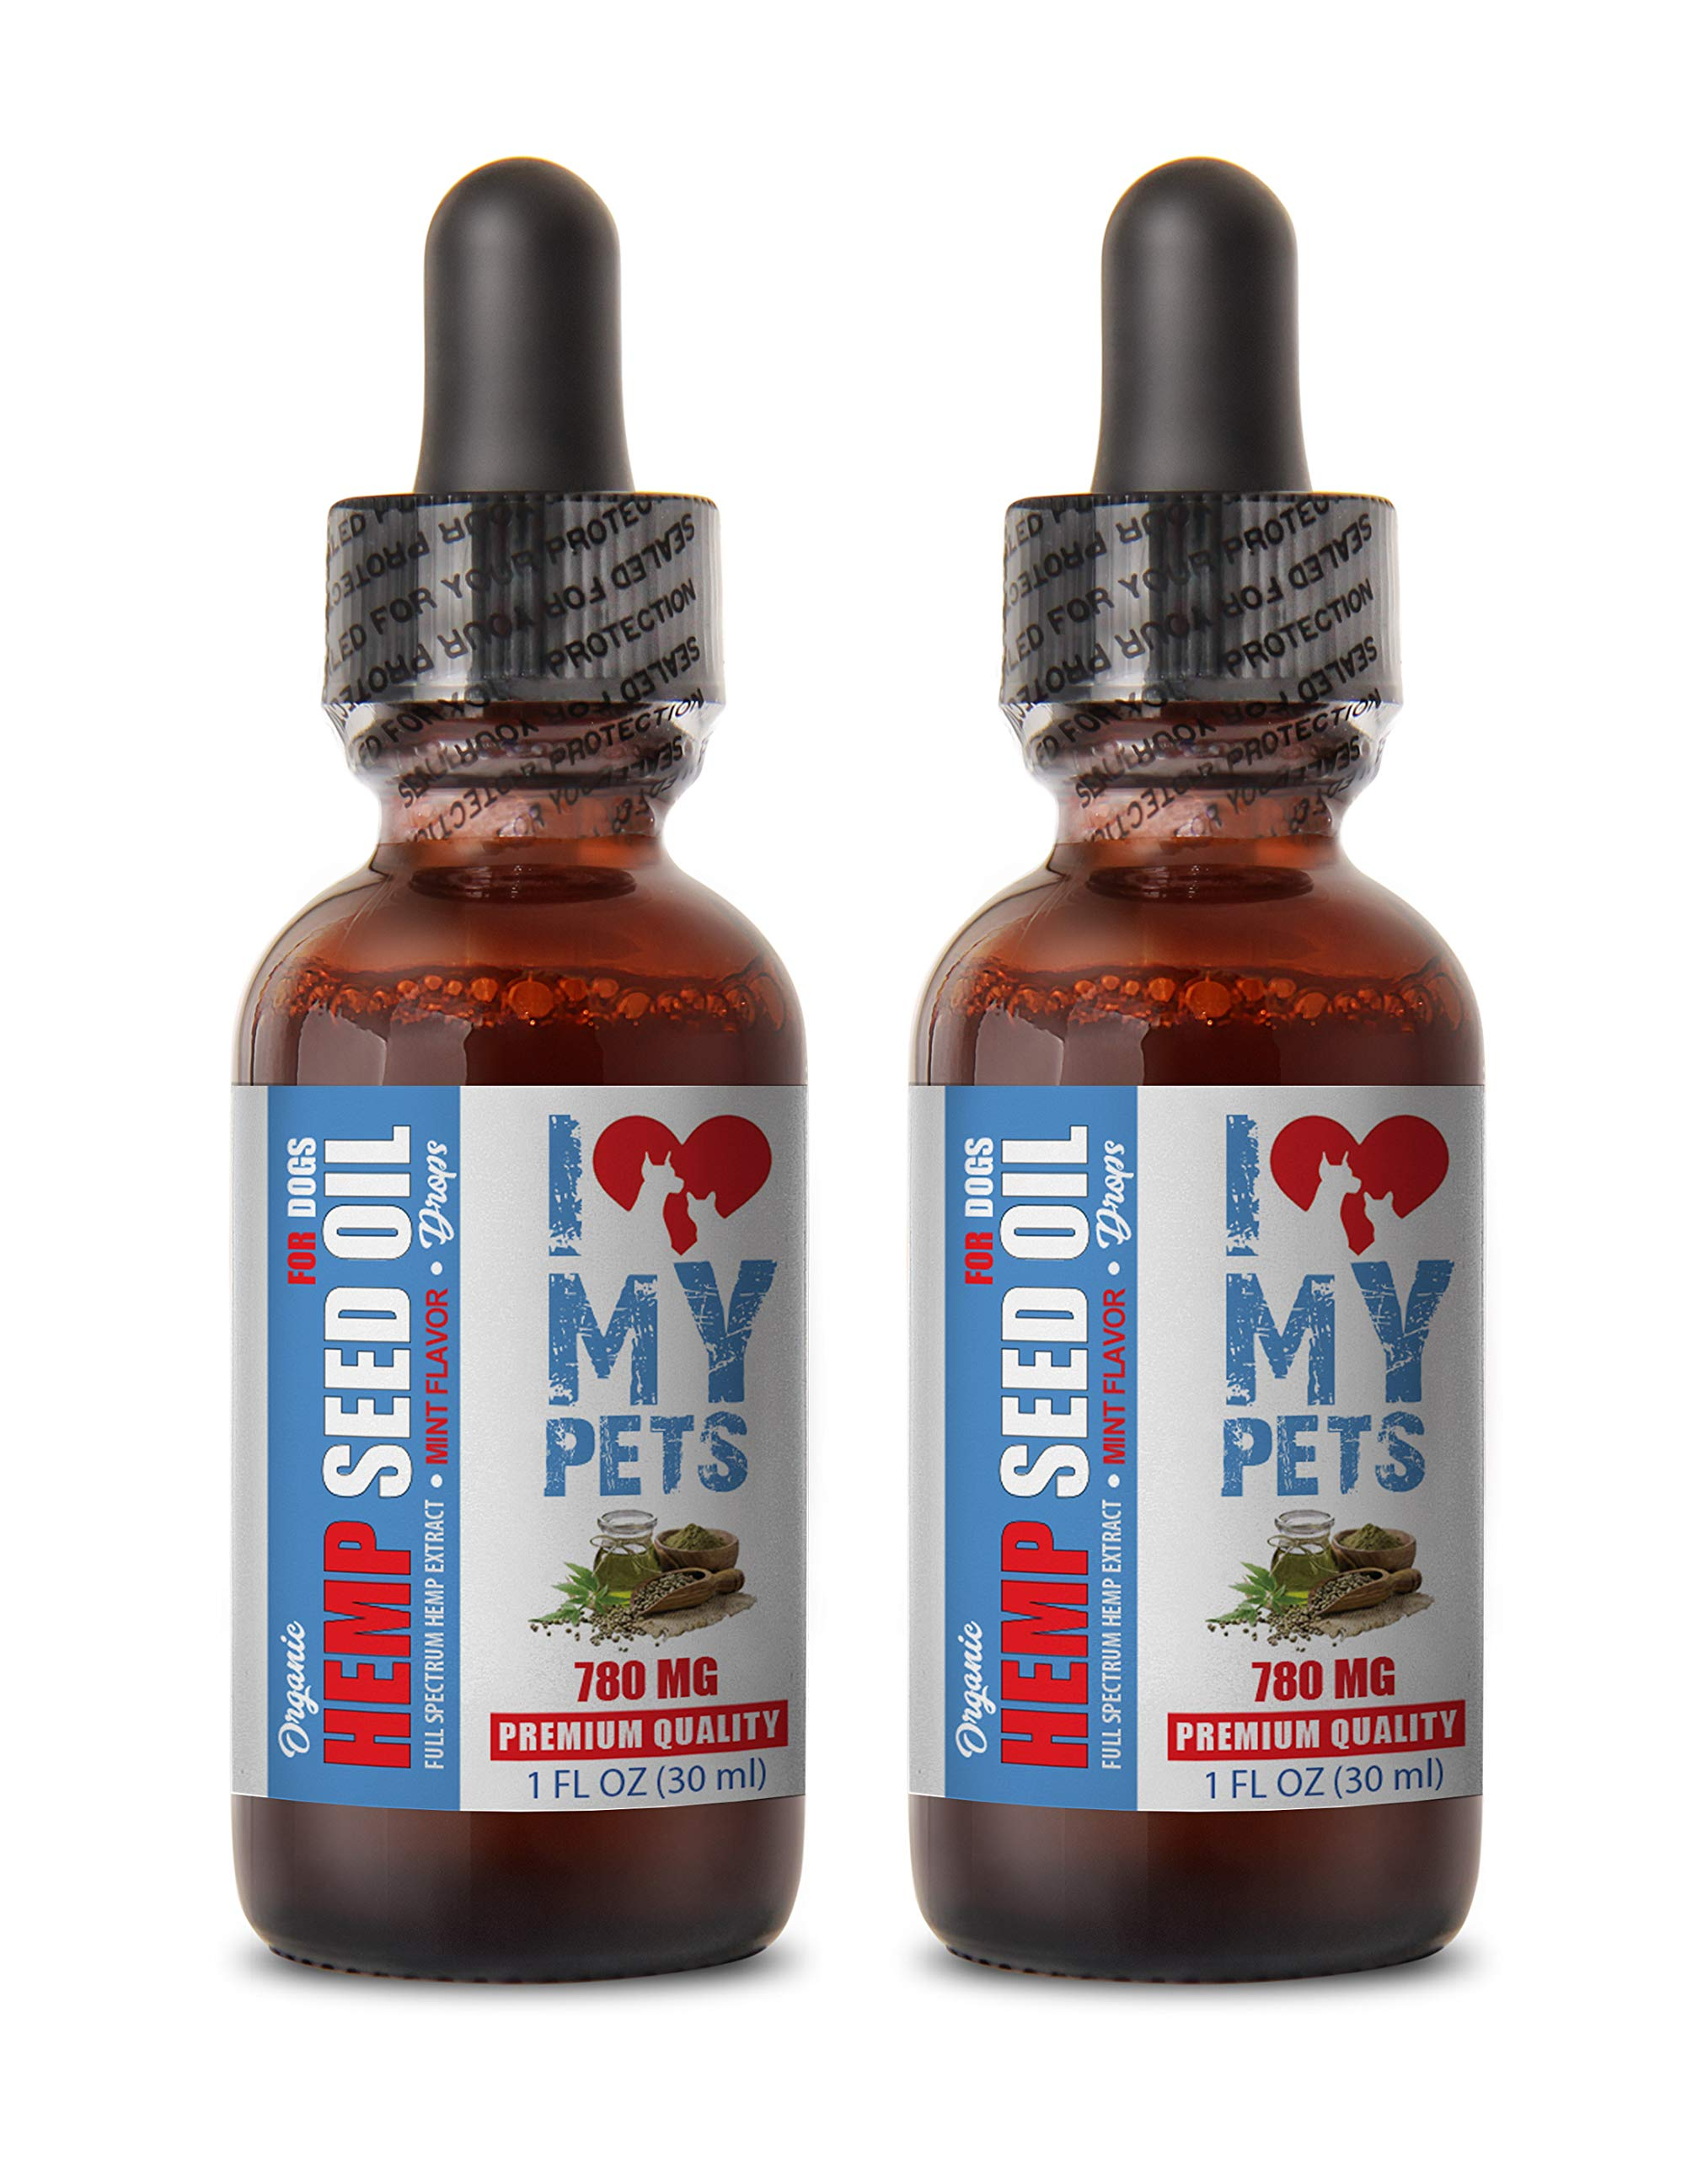 I LOVE MY PETS LLC Dog Anxiety Hemp Treats - Dog Hemp Seed Oil Drops - Relaxing Flavor - Omega 3 6 9 Fatty ACIDS - Full Health Control - Omega 3 6 9 for Dogs Liquid - 2 Bottles (60 ML) by I LOVE MY PETS LLC